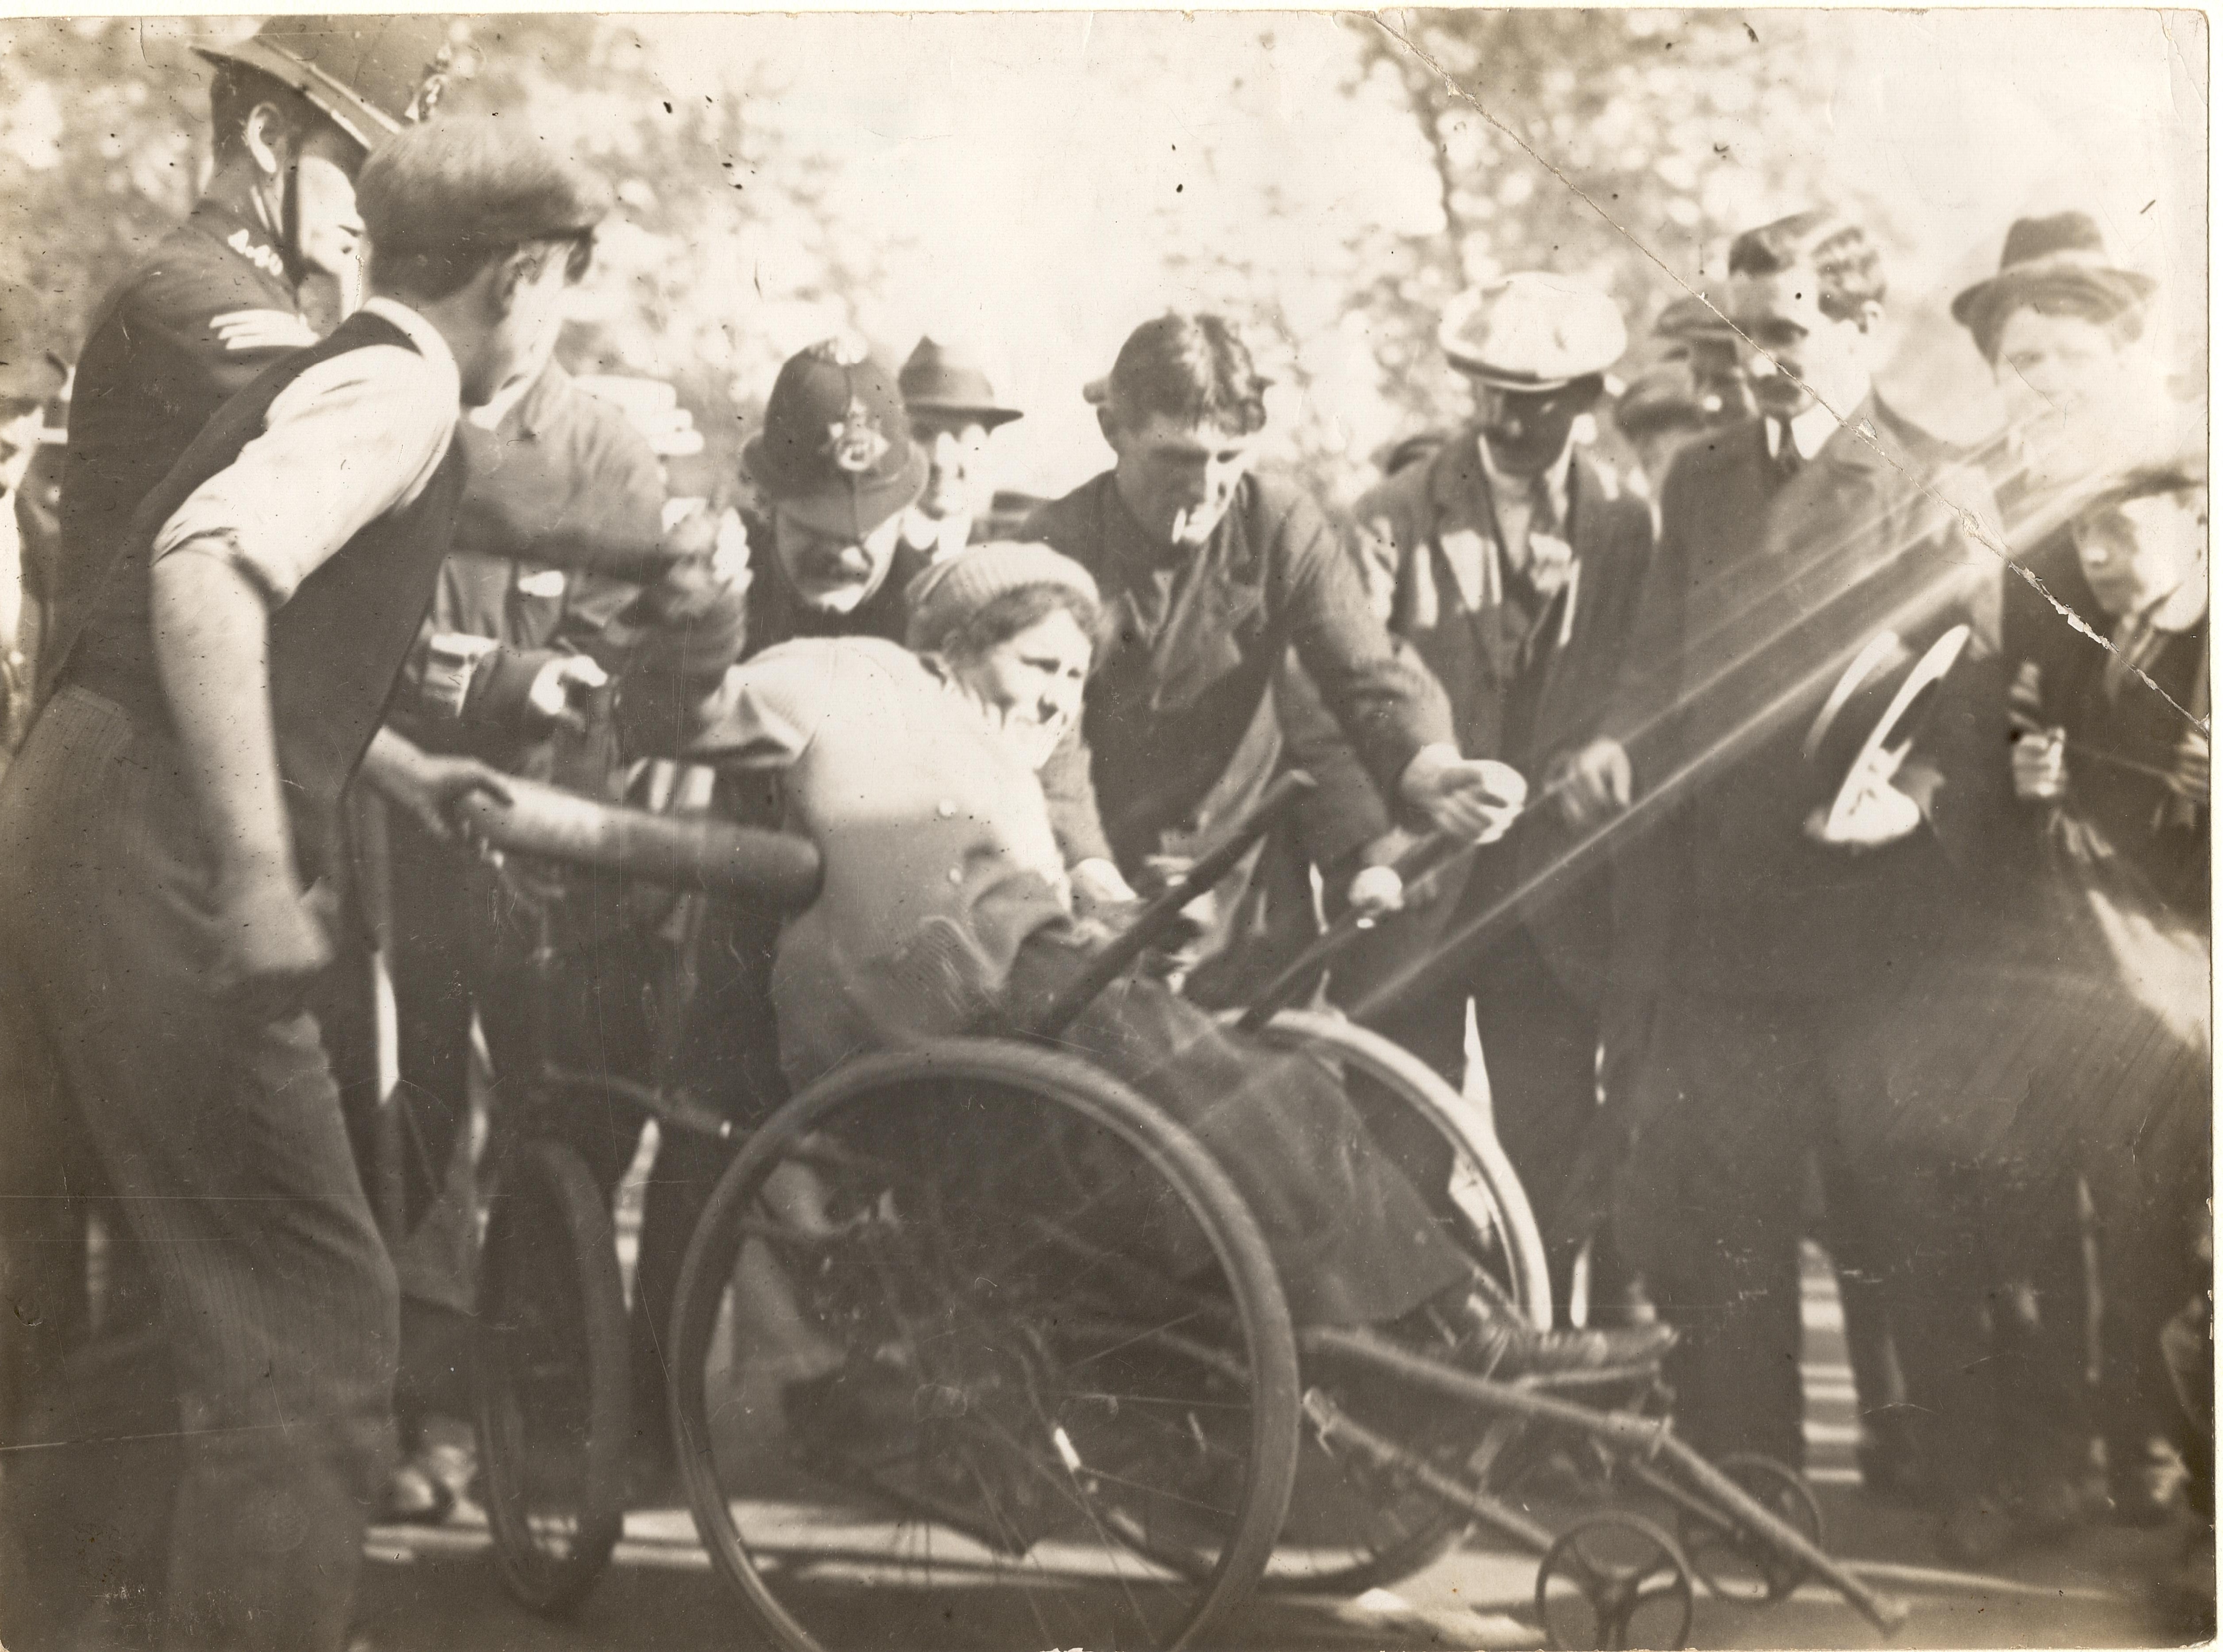 woman seated in wheelchair surrounded by a group of men